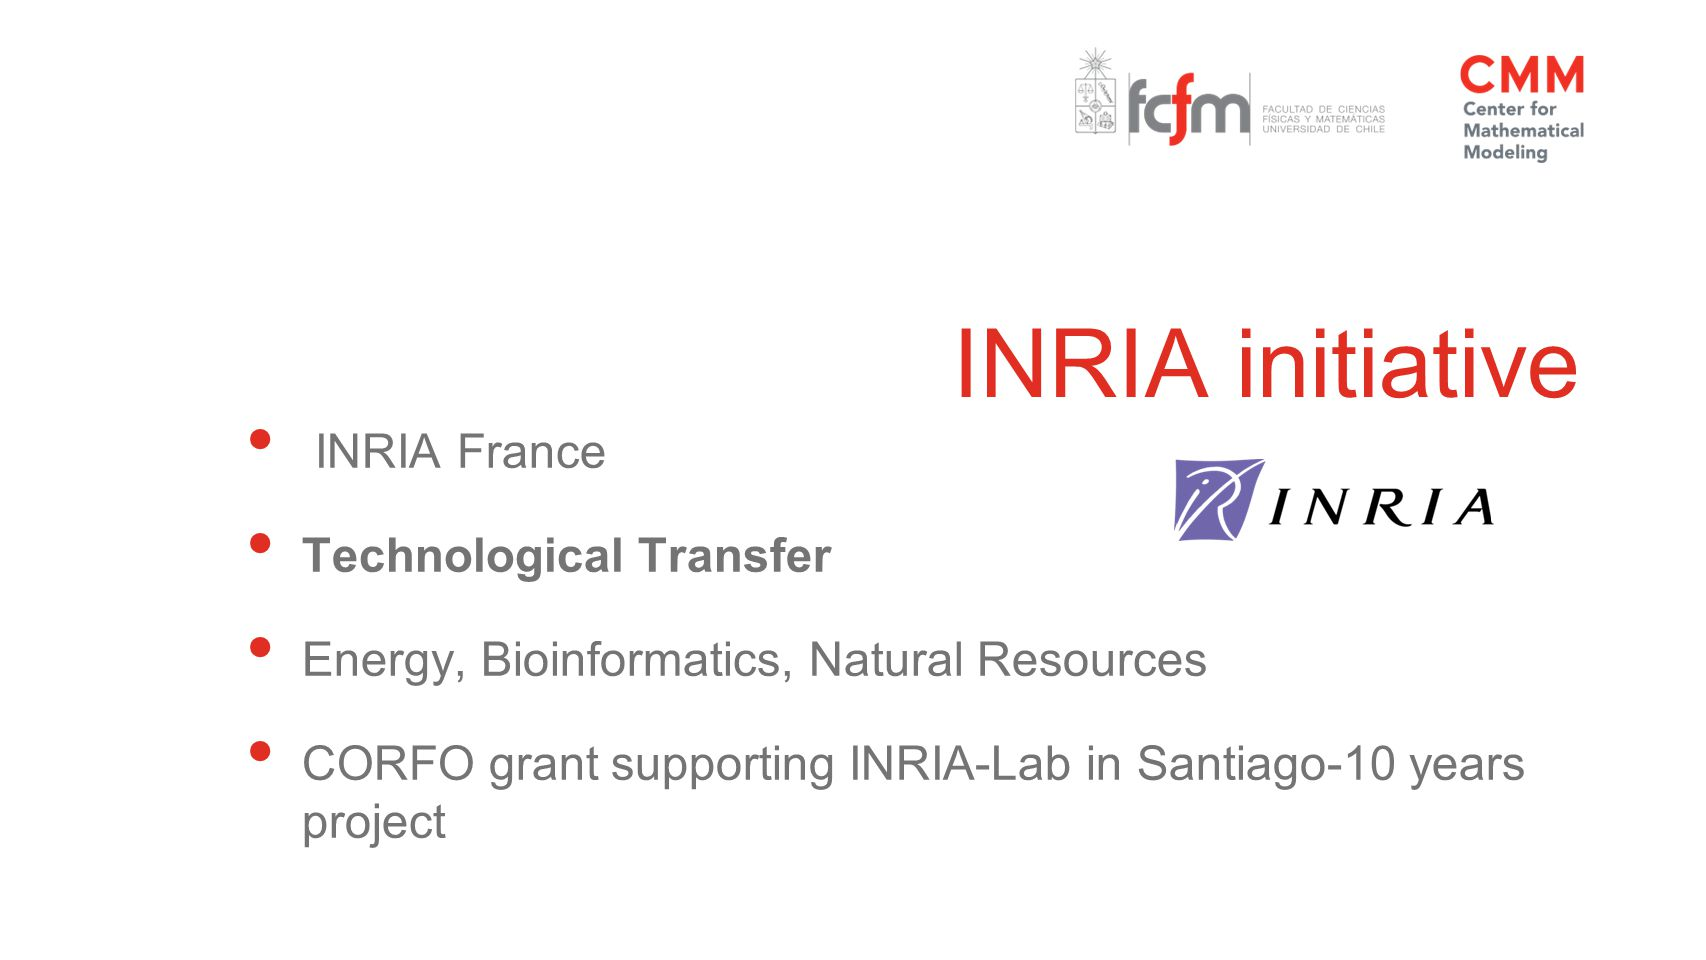 INRIA initiative INRIA France Technological Transfer Energy, Bioinformatics, Natural Resources CORFO grant supporting INRIA-Lab in Santiago-10 years project